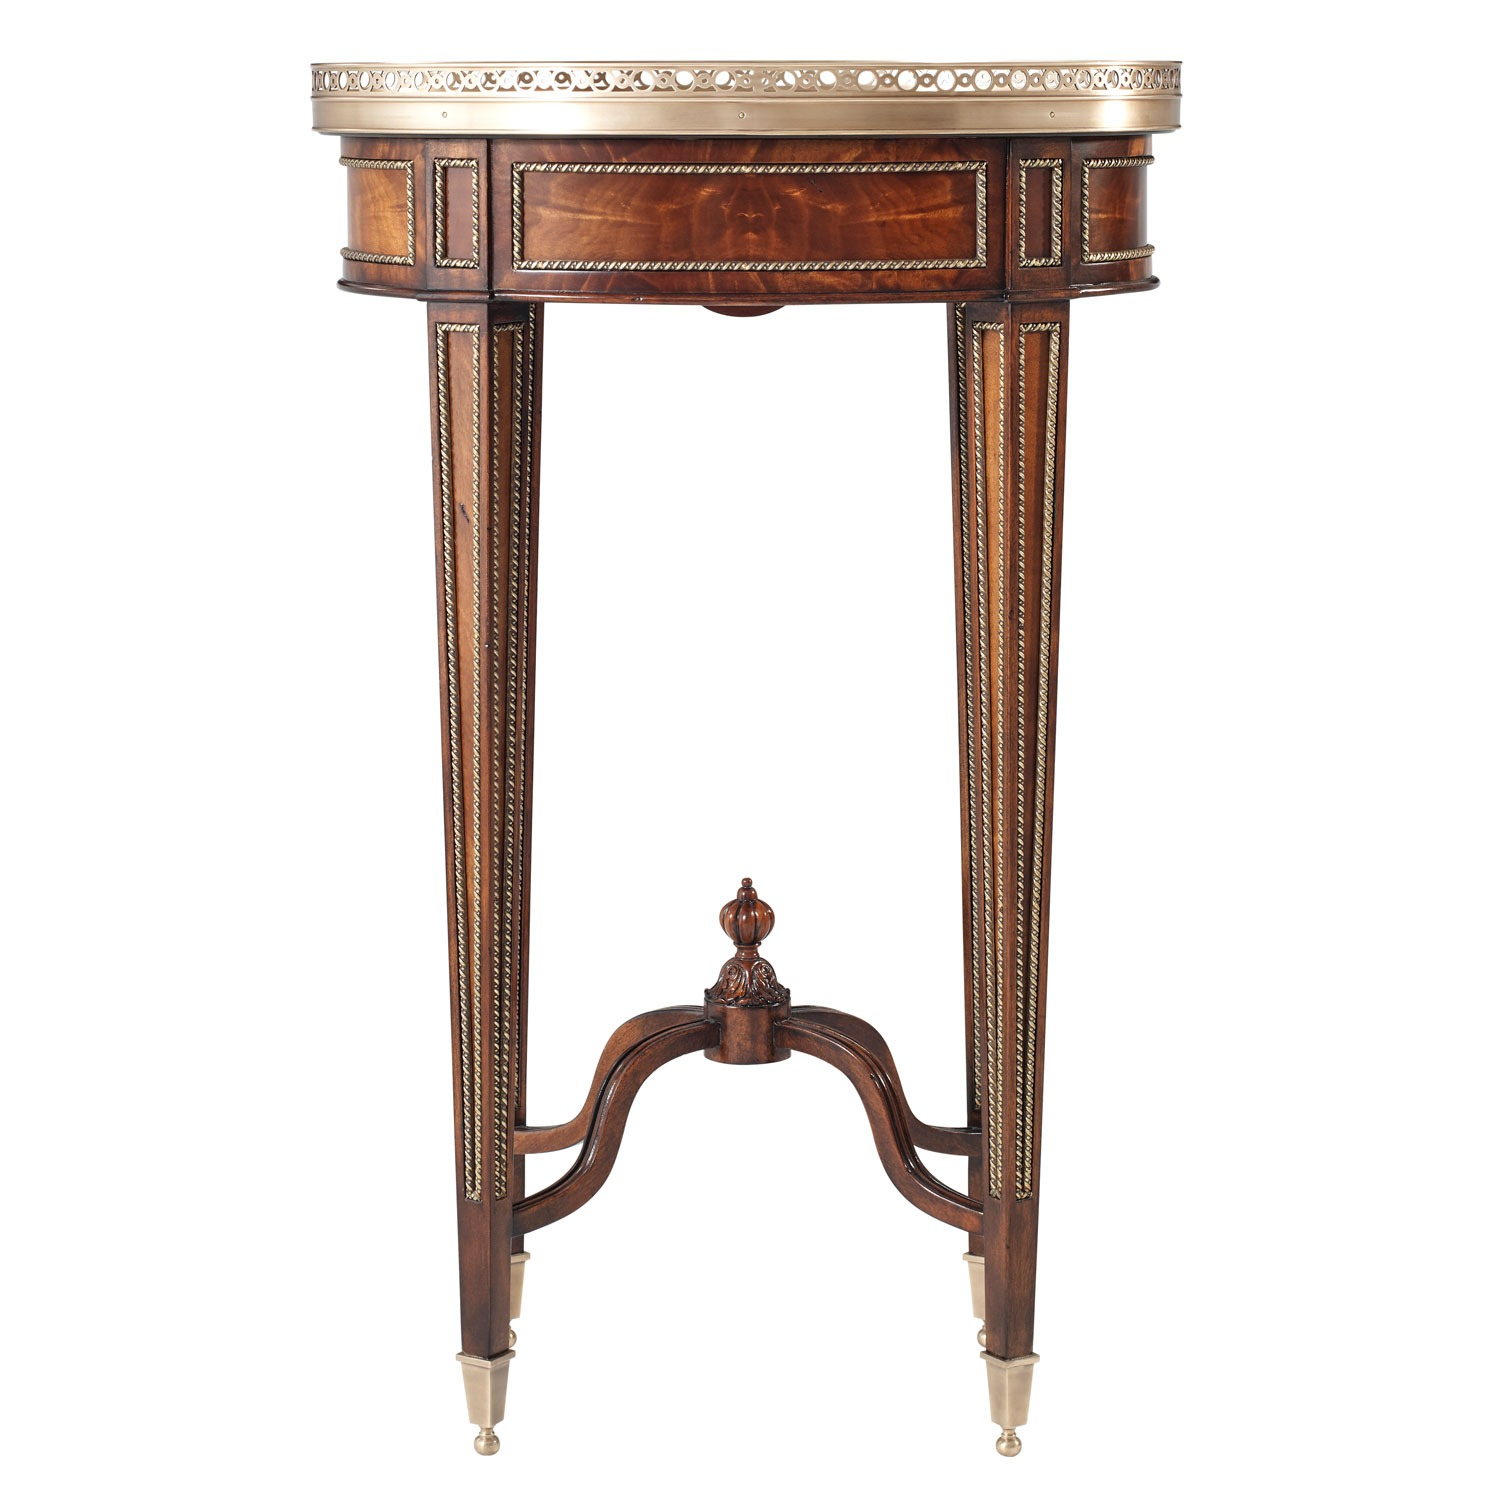 Louis XVI style lamp table